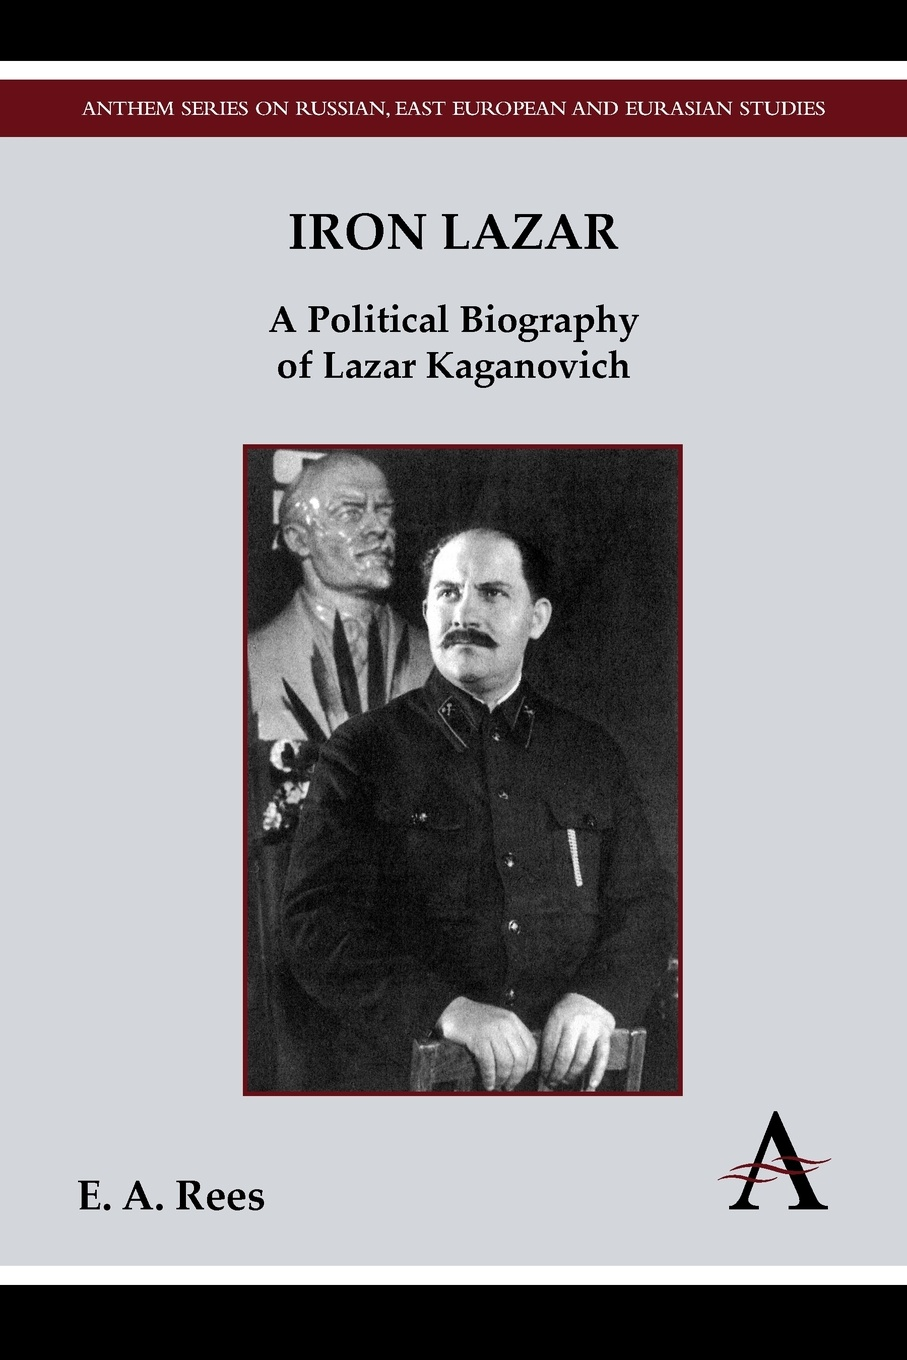 E. A. Rees Iron Lazar. A Political Biography of Lazar Kaganovich max klim the epoch of stalin joseph stalin the way to power page 9